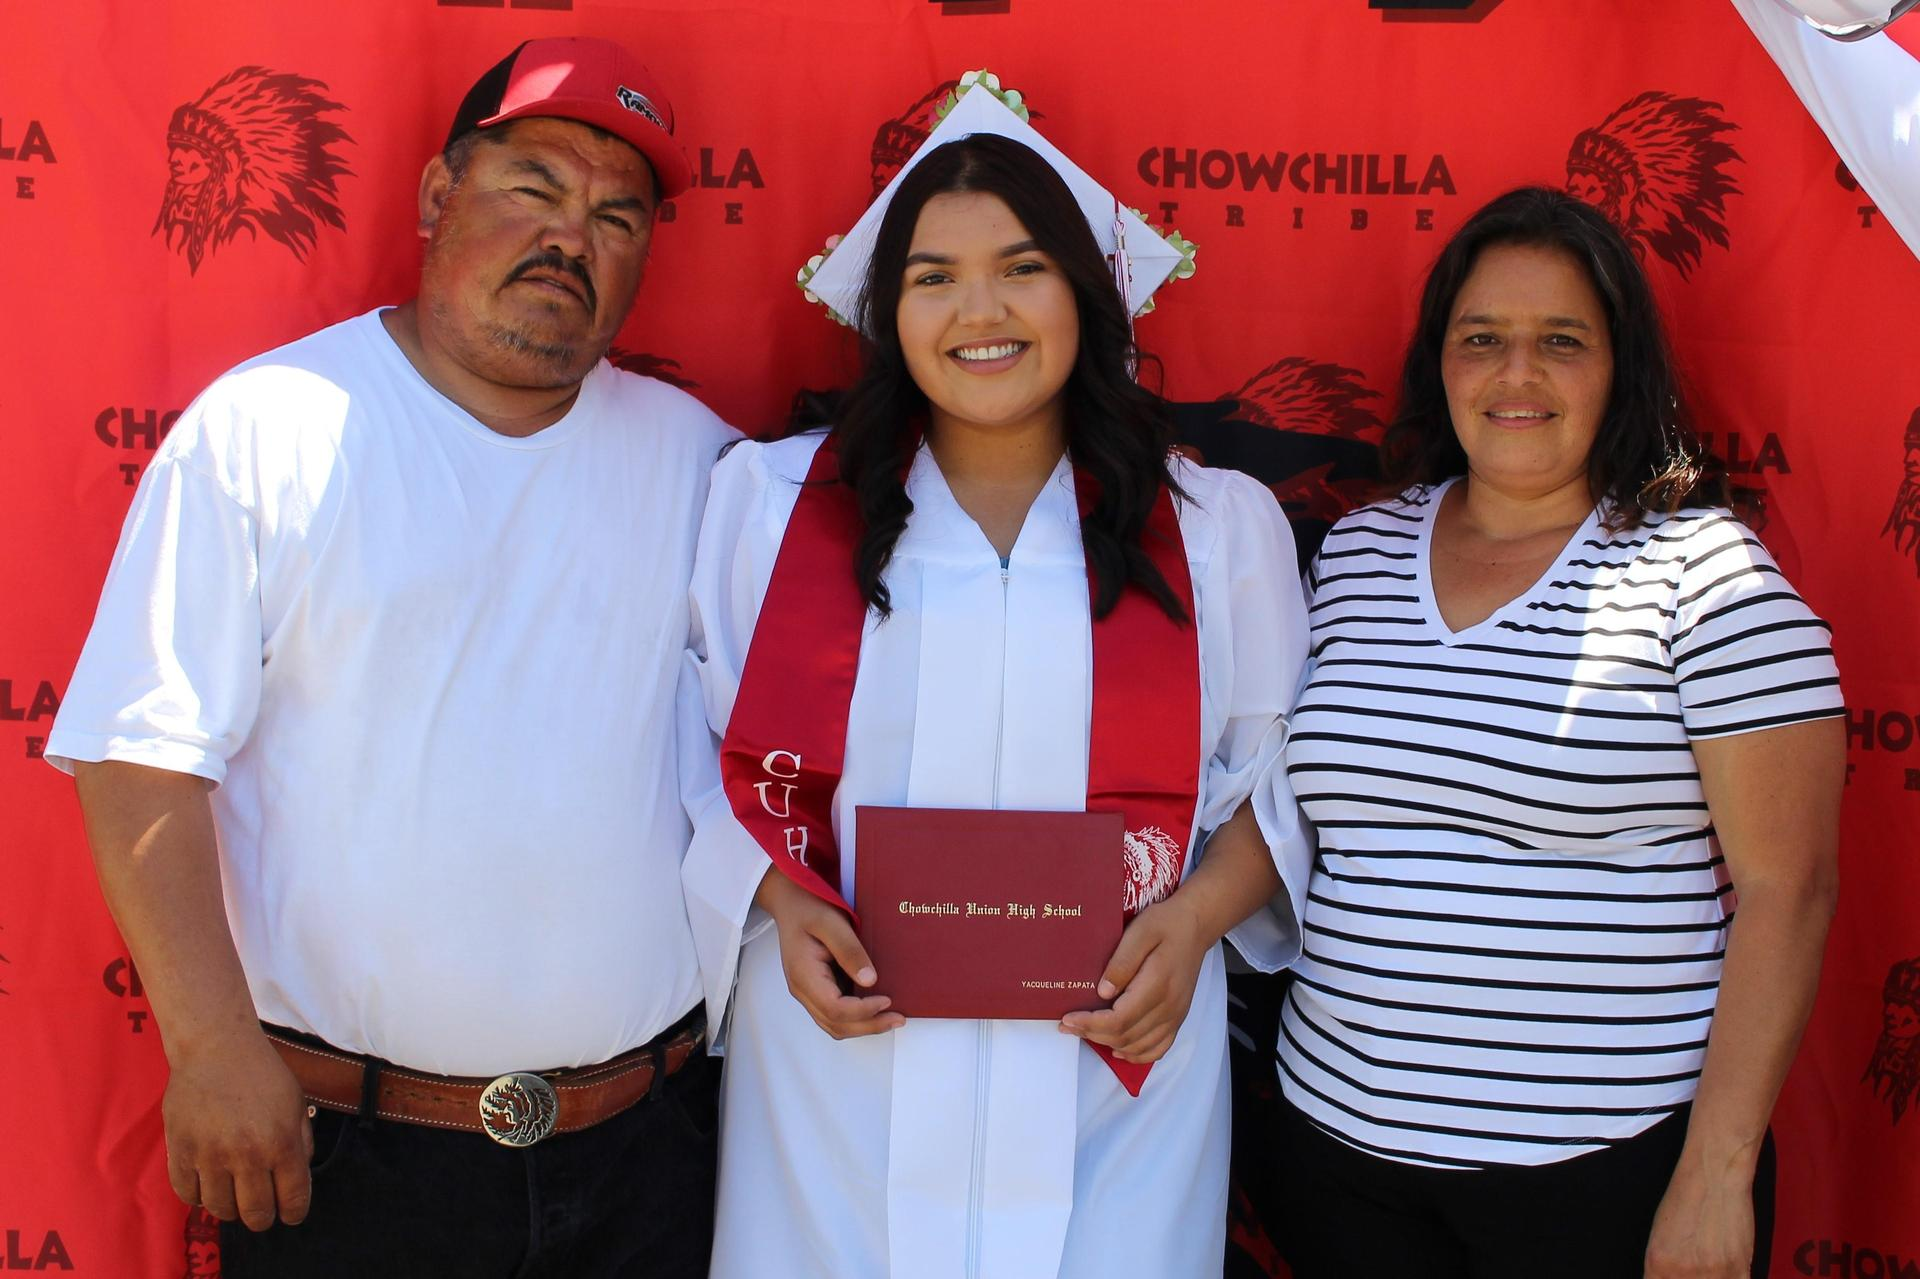 Yacqueline Zapata and family